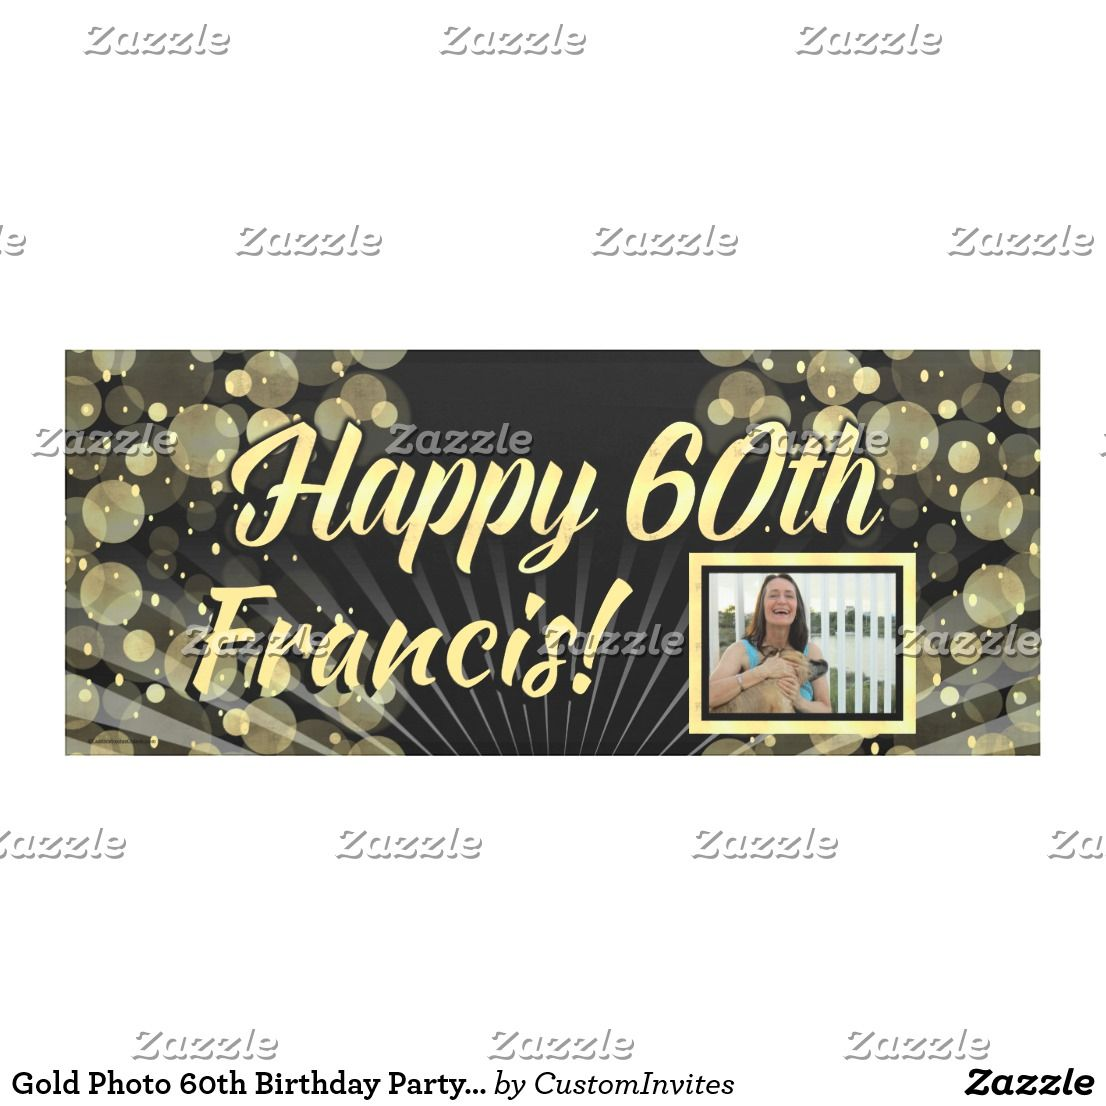 Gold Photo 60th Birthday Party Banner